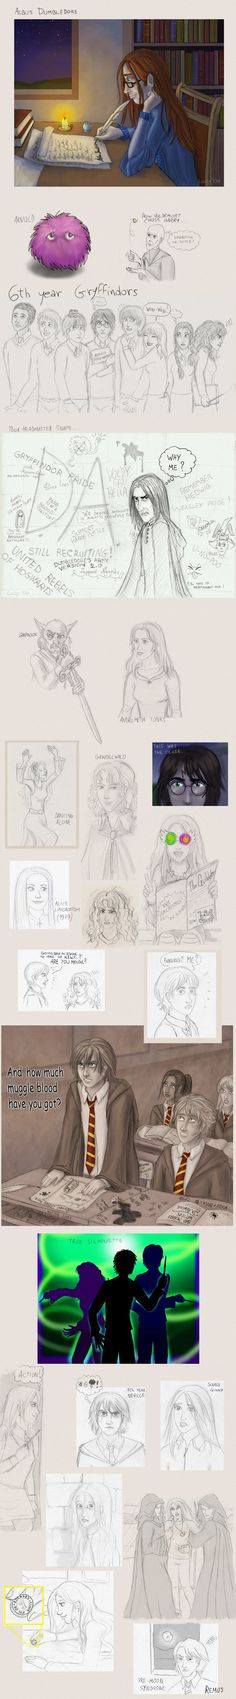 Harry Potter stuff by =Loony-Lucy on deviantART